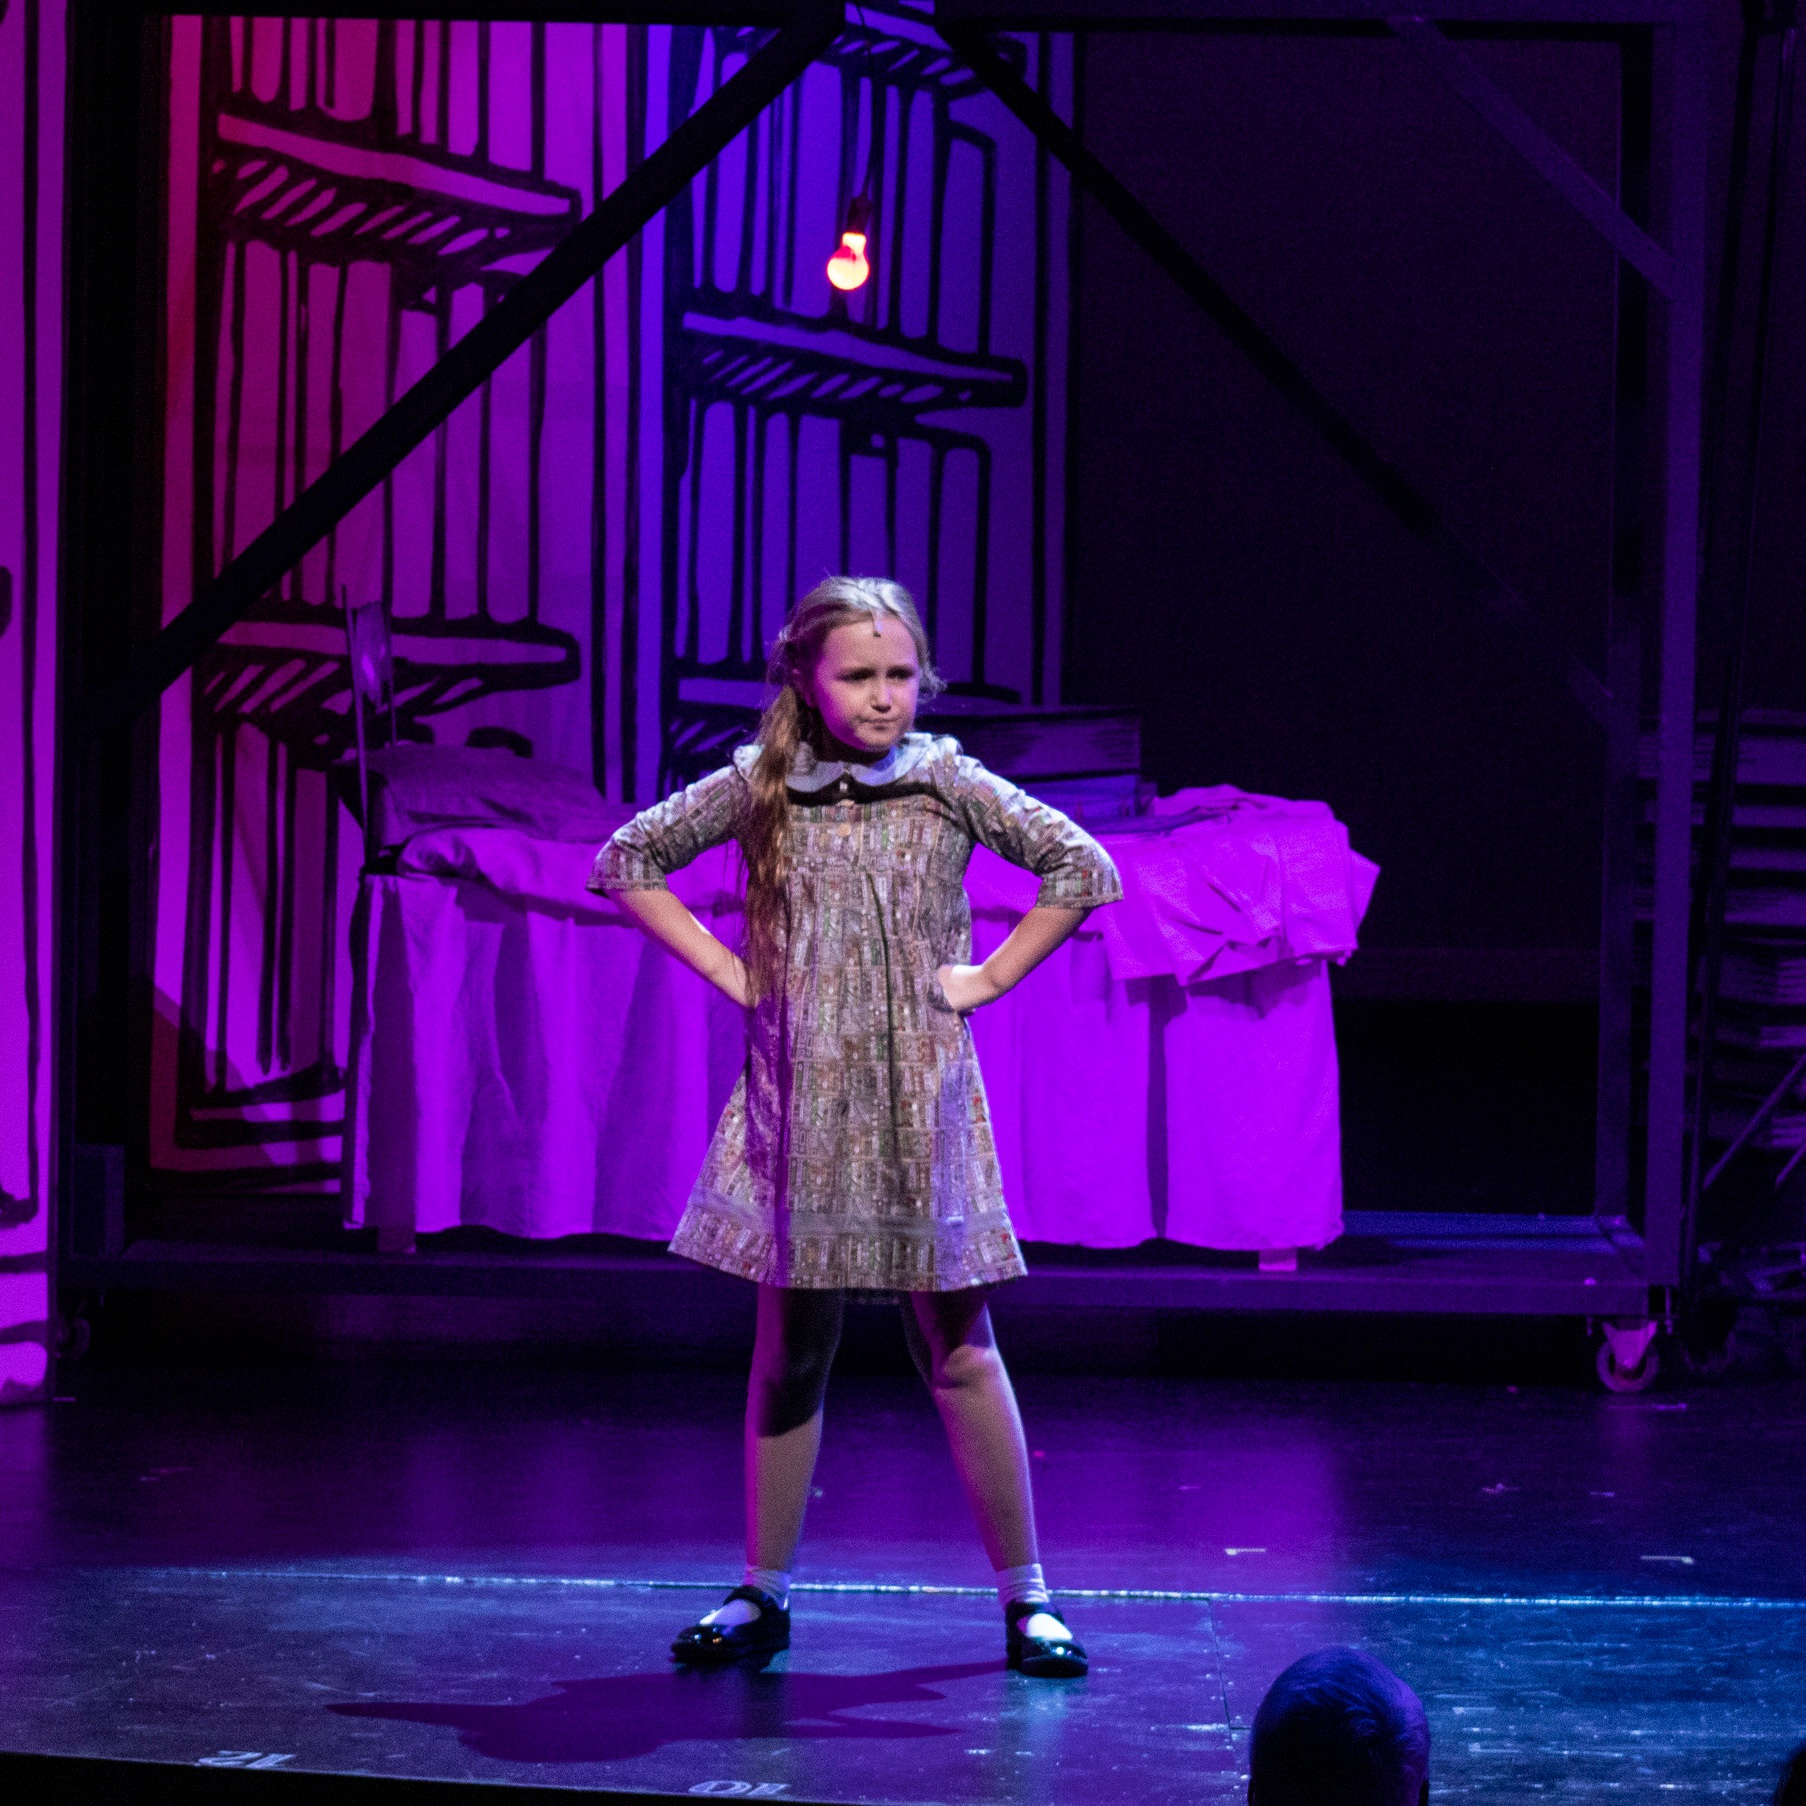 Lily Rouse as Matilda. Photo by Crystal Tuxhorn.